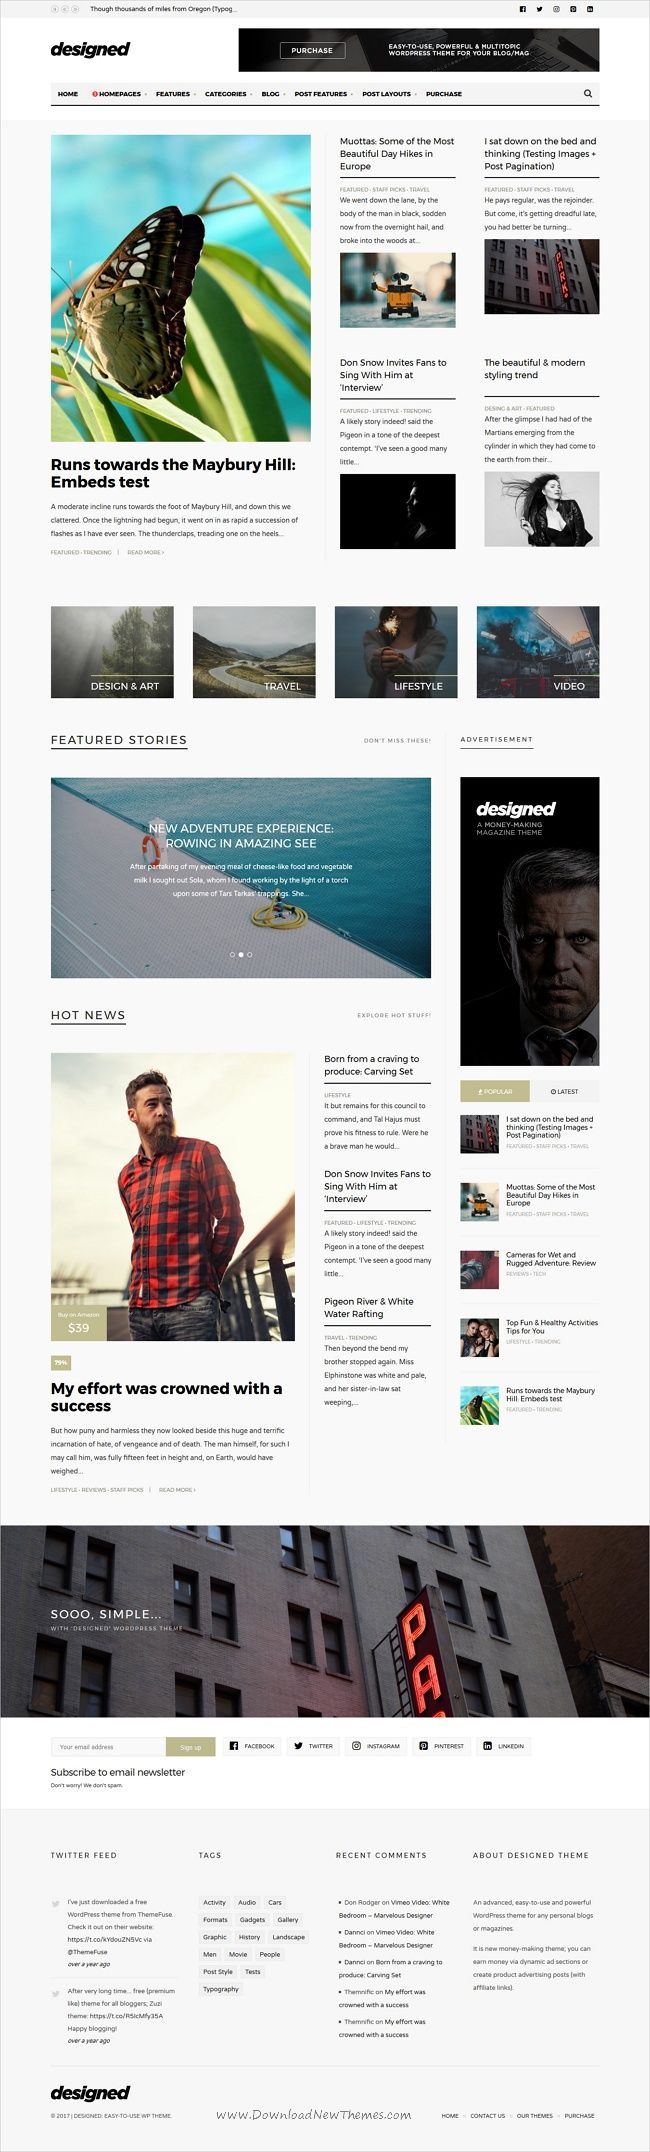 Designed is a elegant and minimalist design 7in1 responsive #WordPress theme for news, #blog, #magazine and newspapers website download now➩ https://themeforest.net/item/designed-magazine-newspaper-blog-wordpress-theme/19322769?ref=Datasata